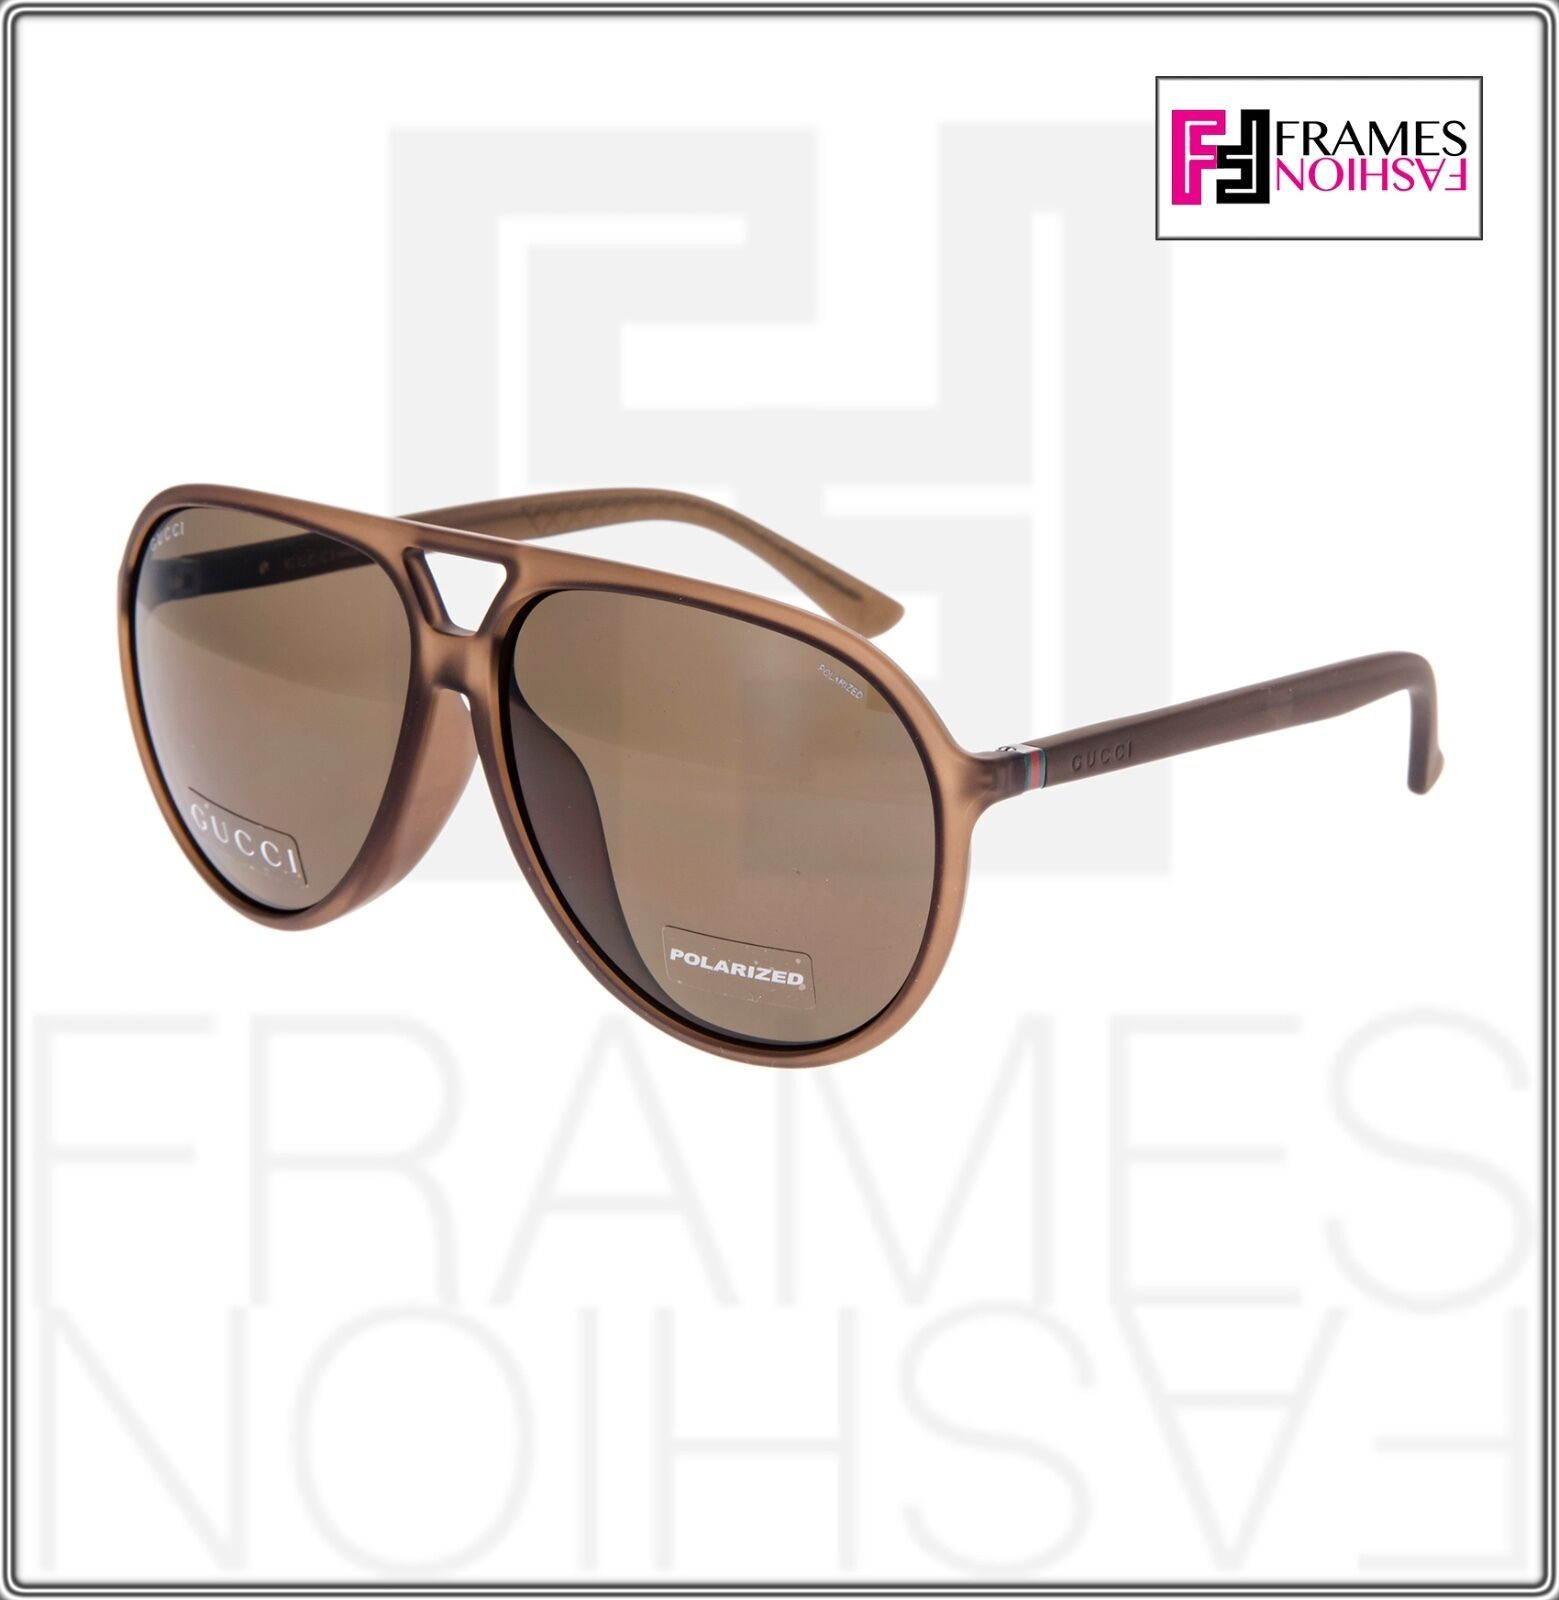 GUCCI GG1094S Aviator Brown Translucent POLARIZED Sunglasses Unisex 1094 1090